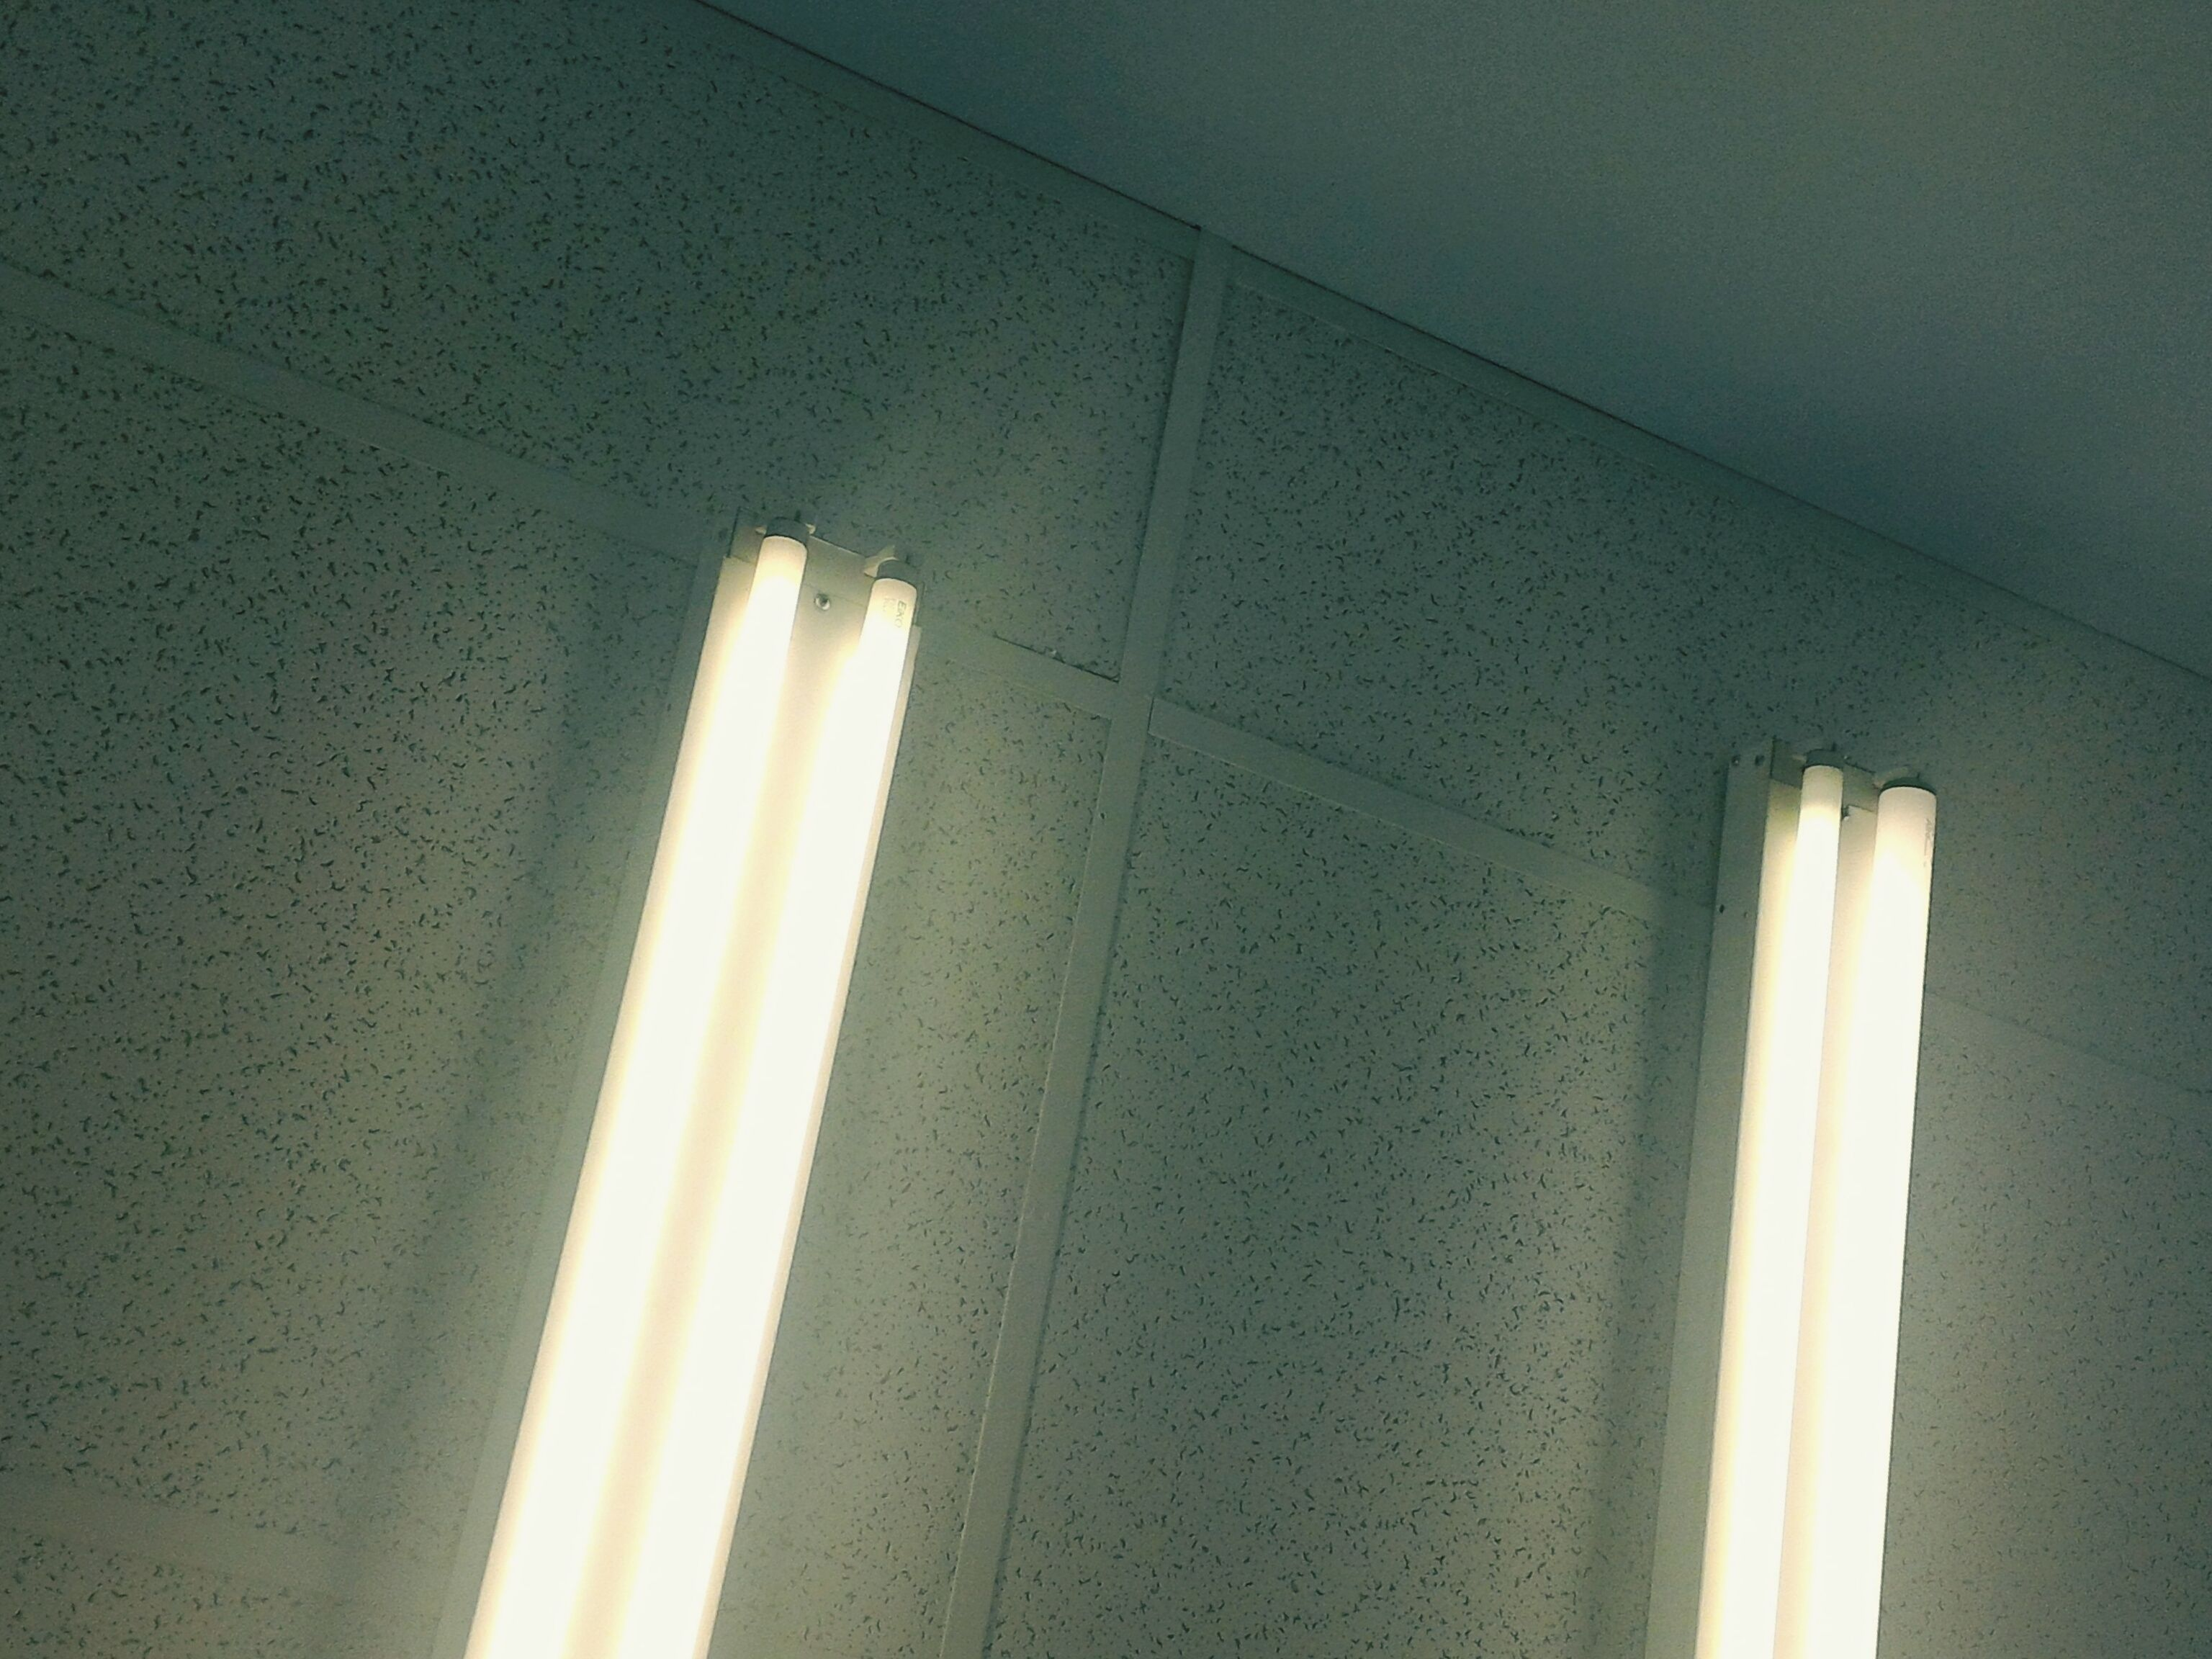 Problems With Fluorescent Lights